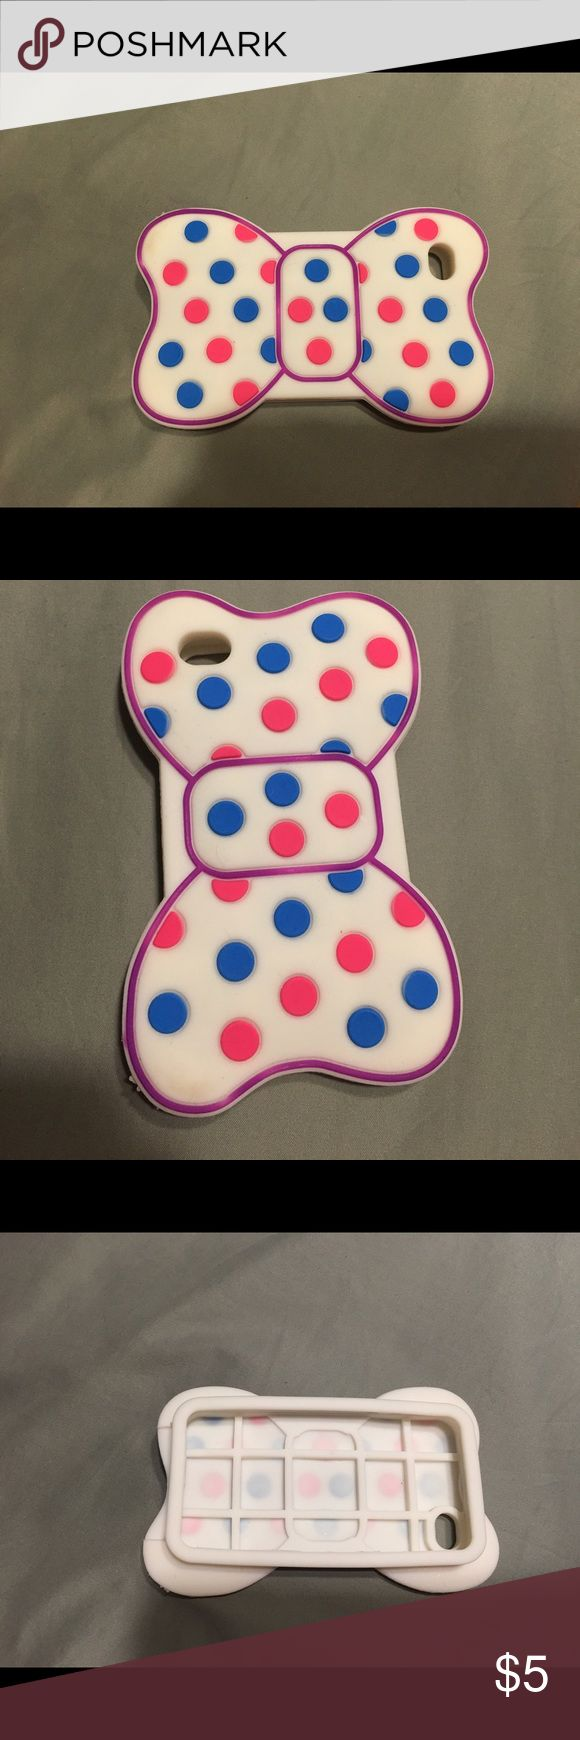 iPhone 4 bow case Cute silicone bow case for iPhone 4 Accessories Phone Cases